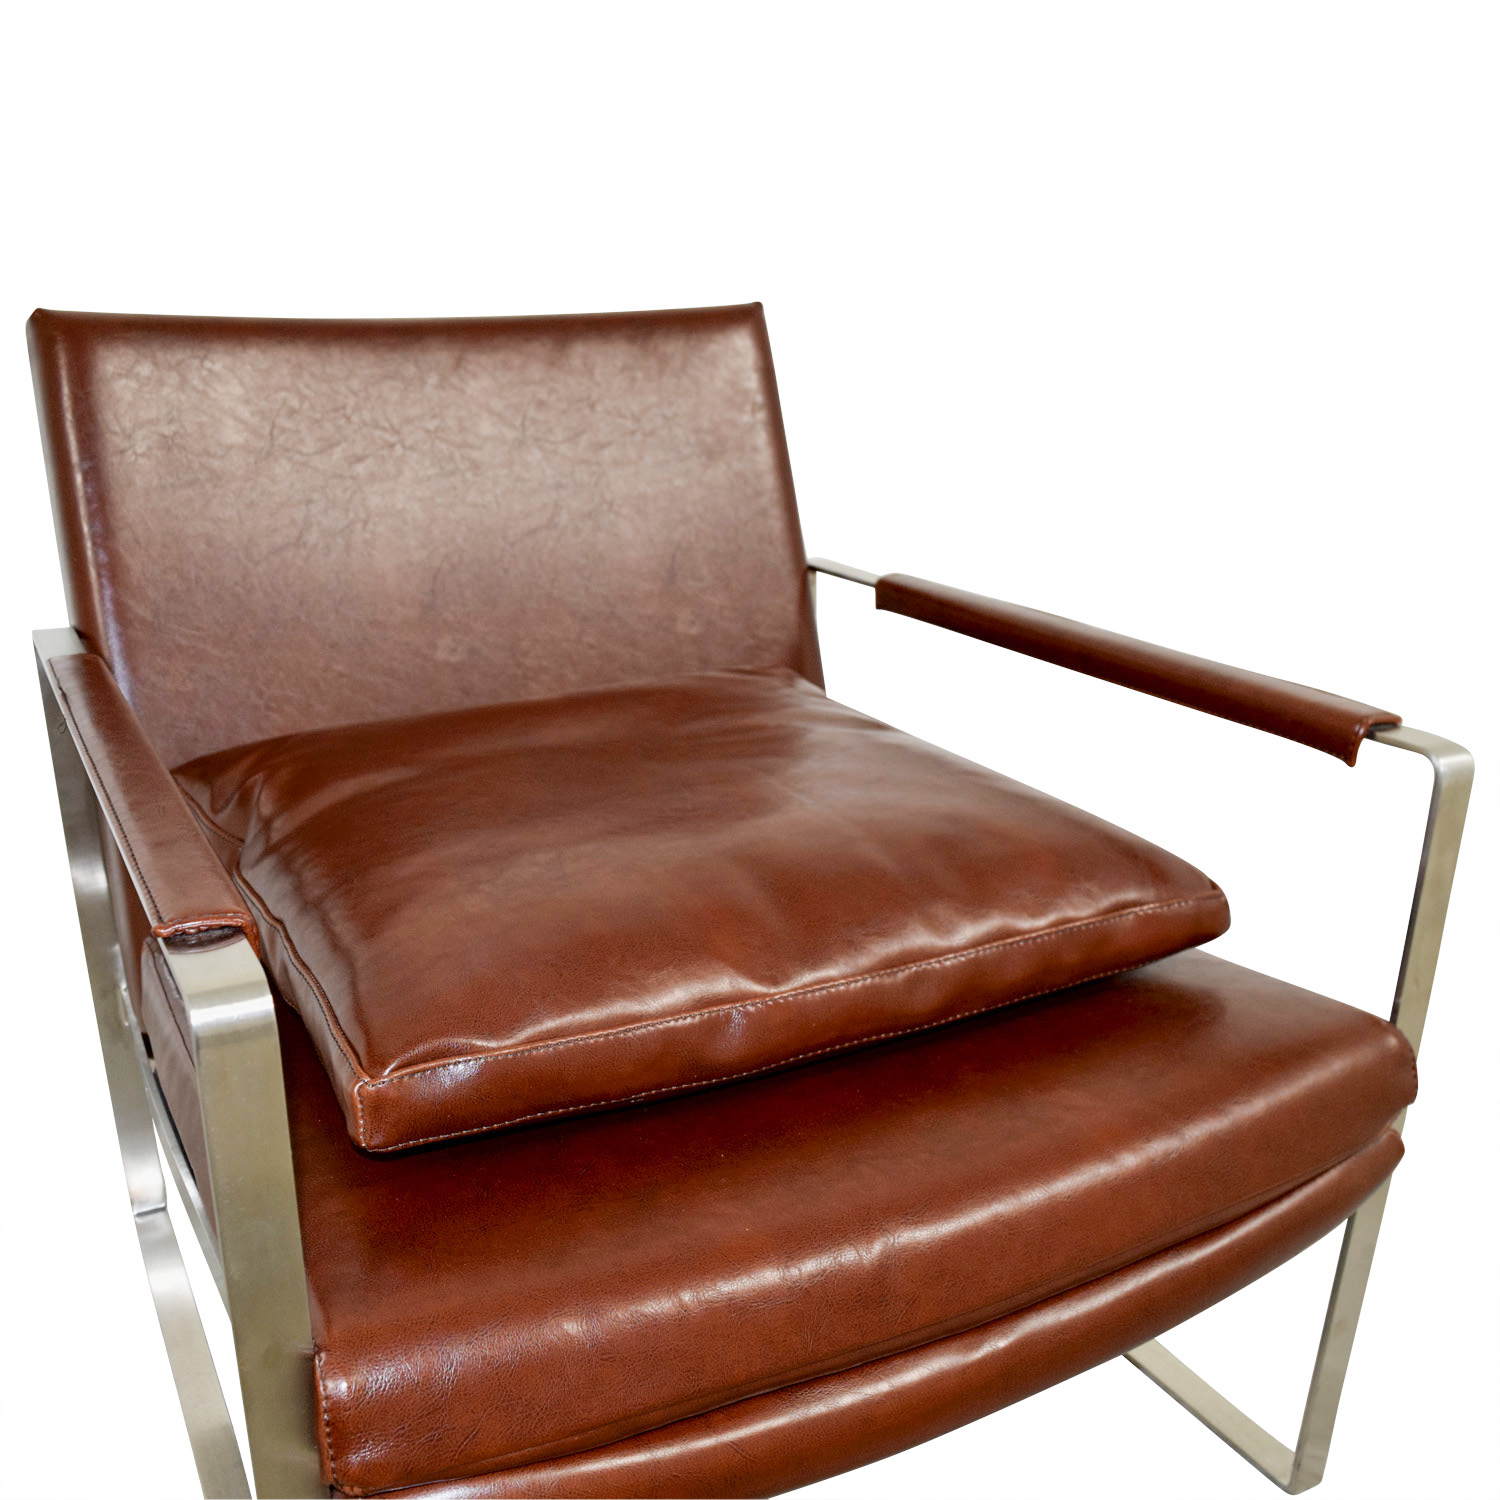 ... Buy Soho Concept Soho Concept Zara Brown And Chrome Accent Chair Online